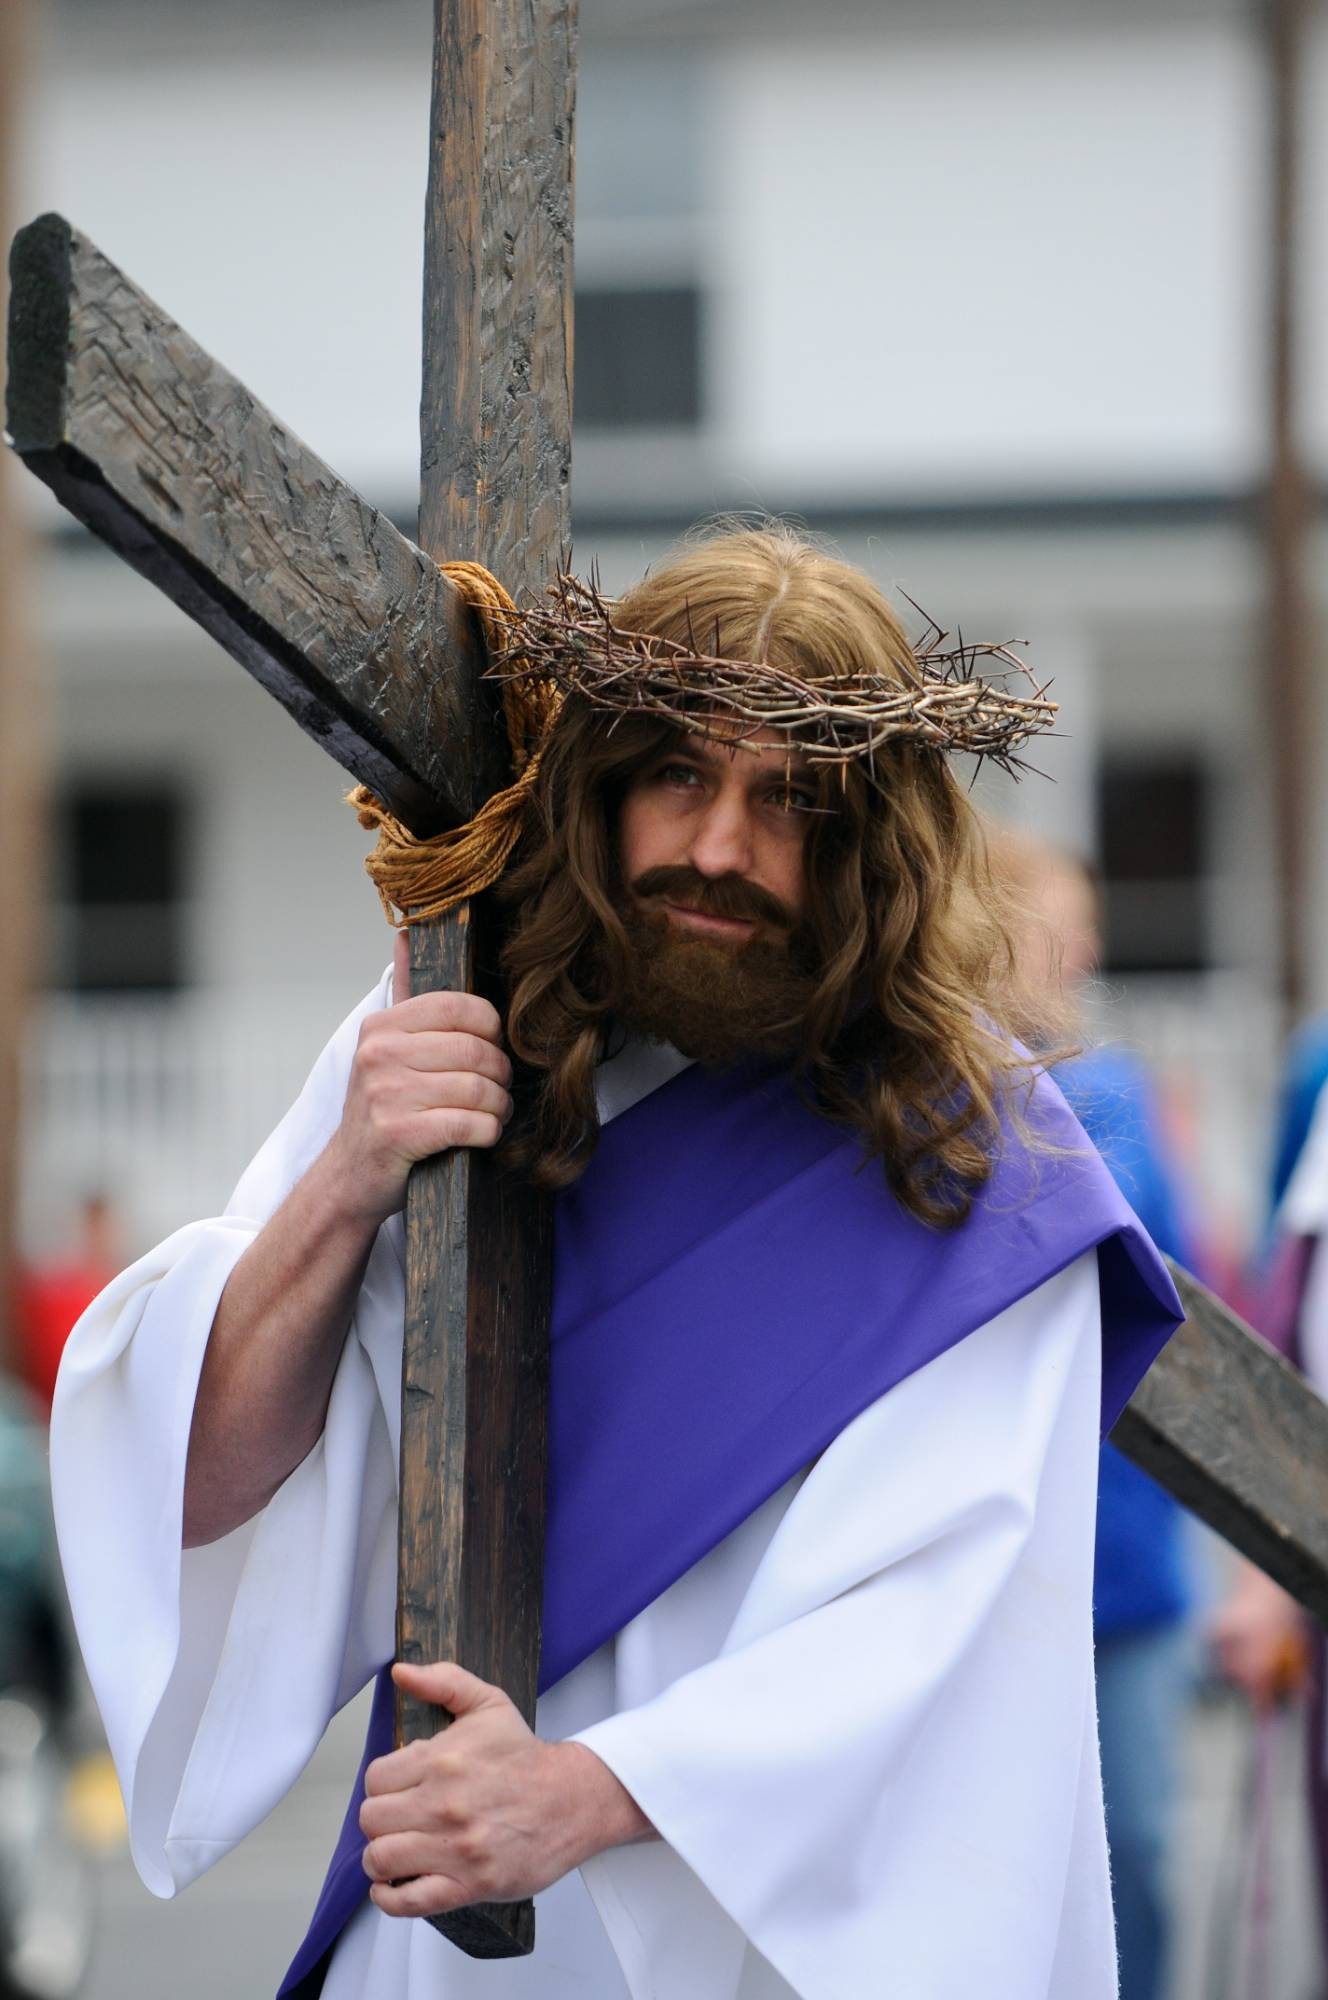 Jeff Nemeth, Frackville, Pa., carries the cross as he portrays Jesus during the 36th annual Trek of the Cross through the streets of Gordon, Pa.